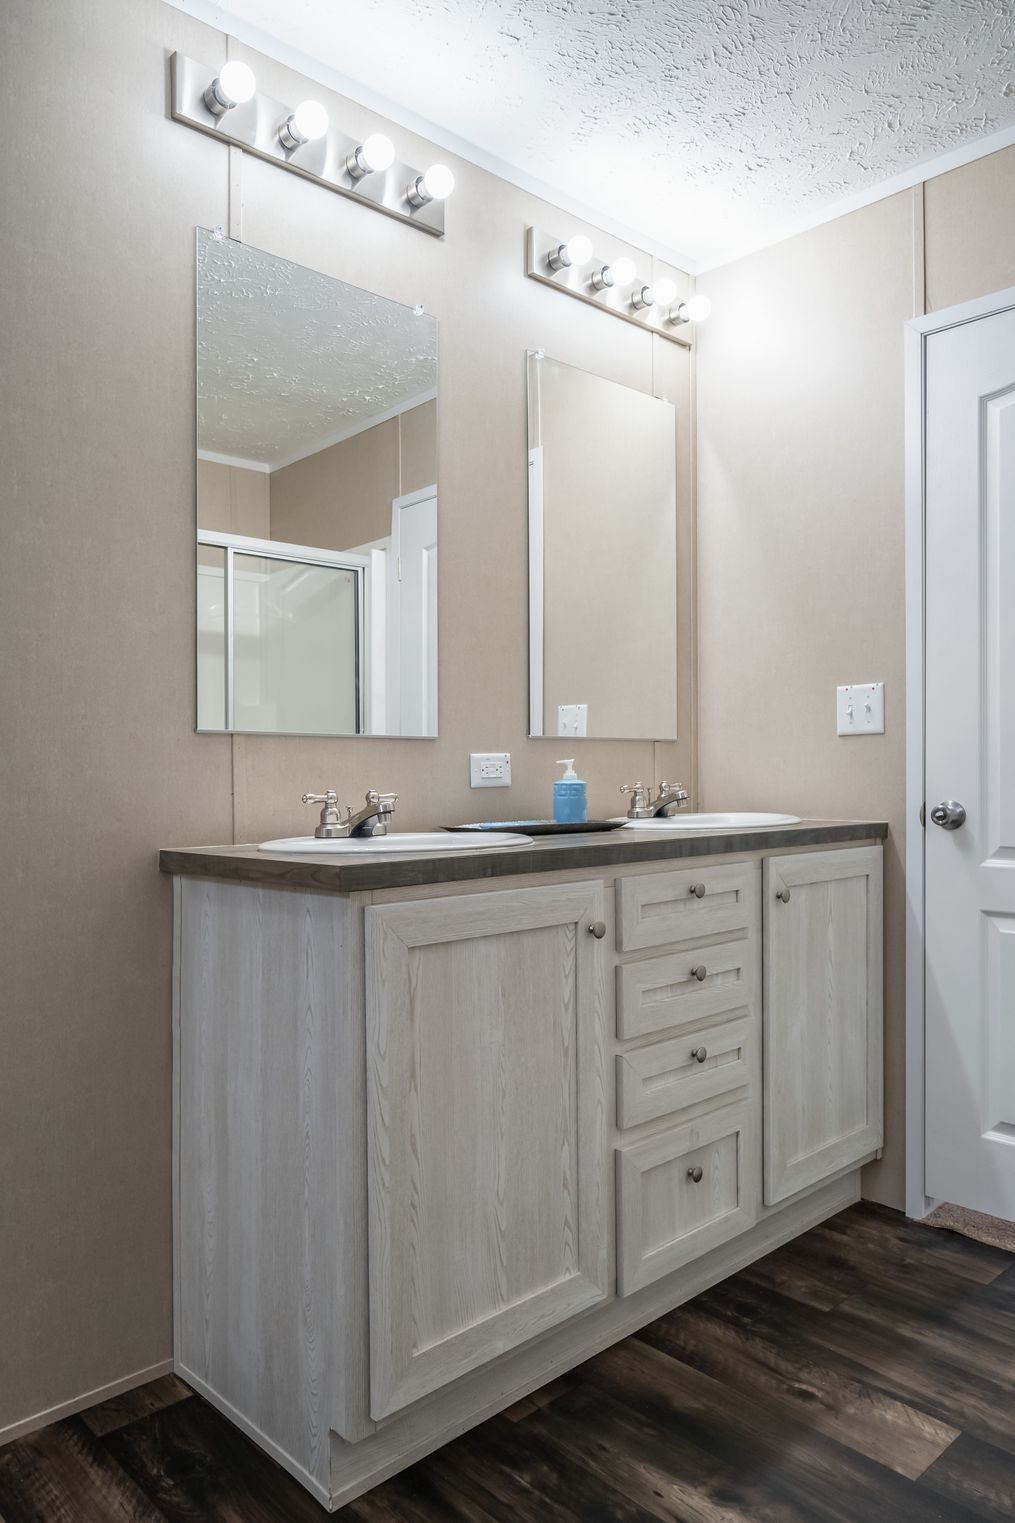 The ULTRA PRO 76 Master Bathroom. This Manufactured Mobile Home features 4 bedrooms and 2 baths.